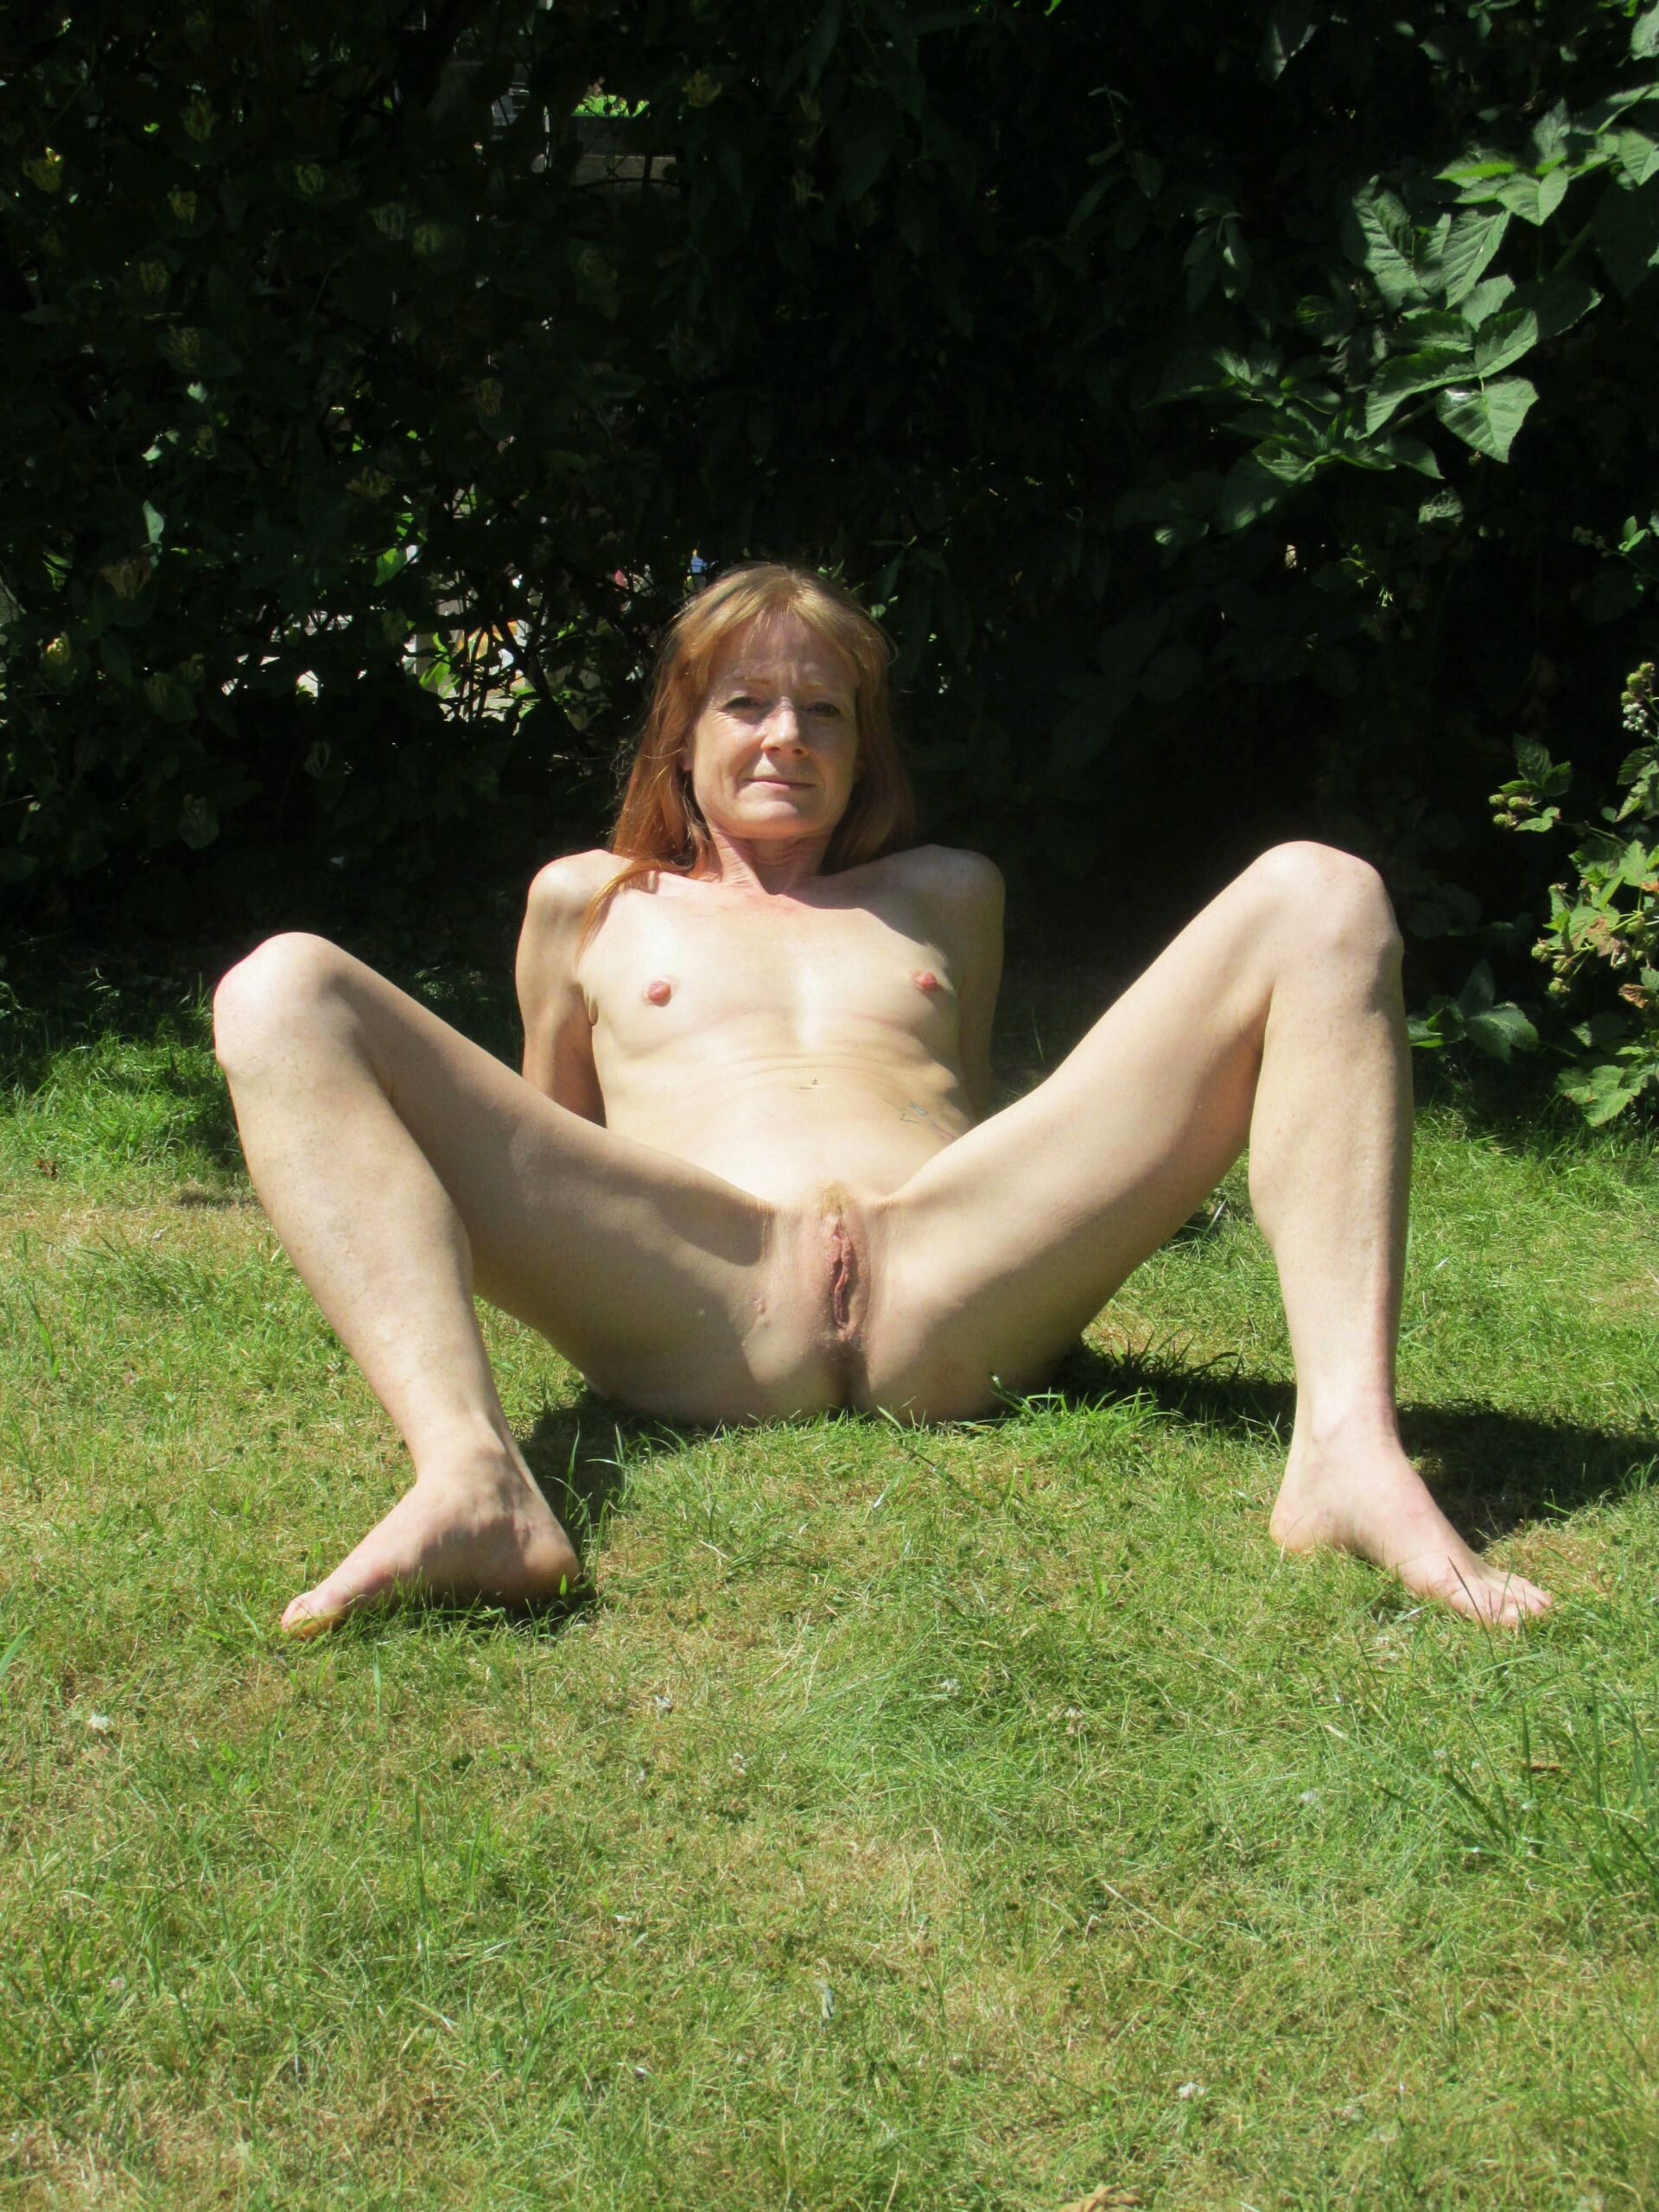 Redheaded fuck slut in her garden real nudity public nudity mature howife